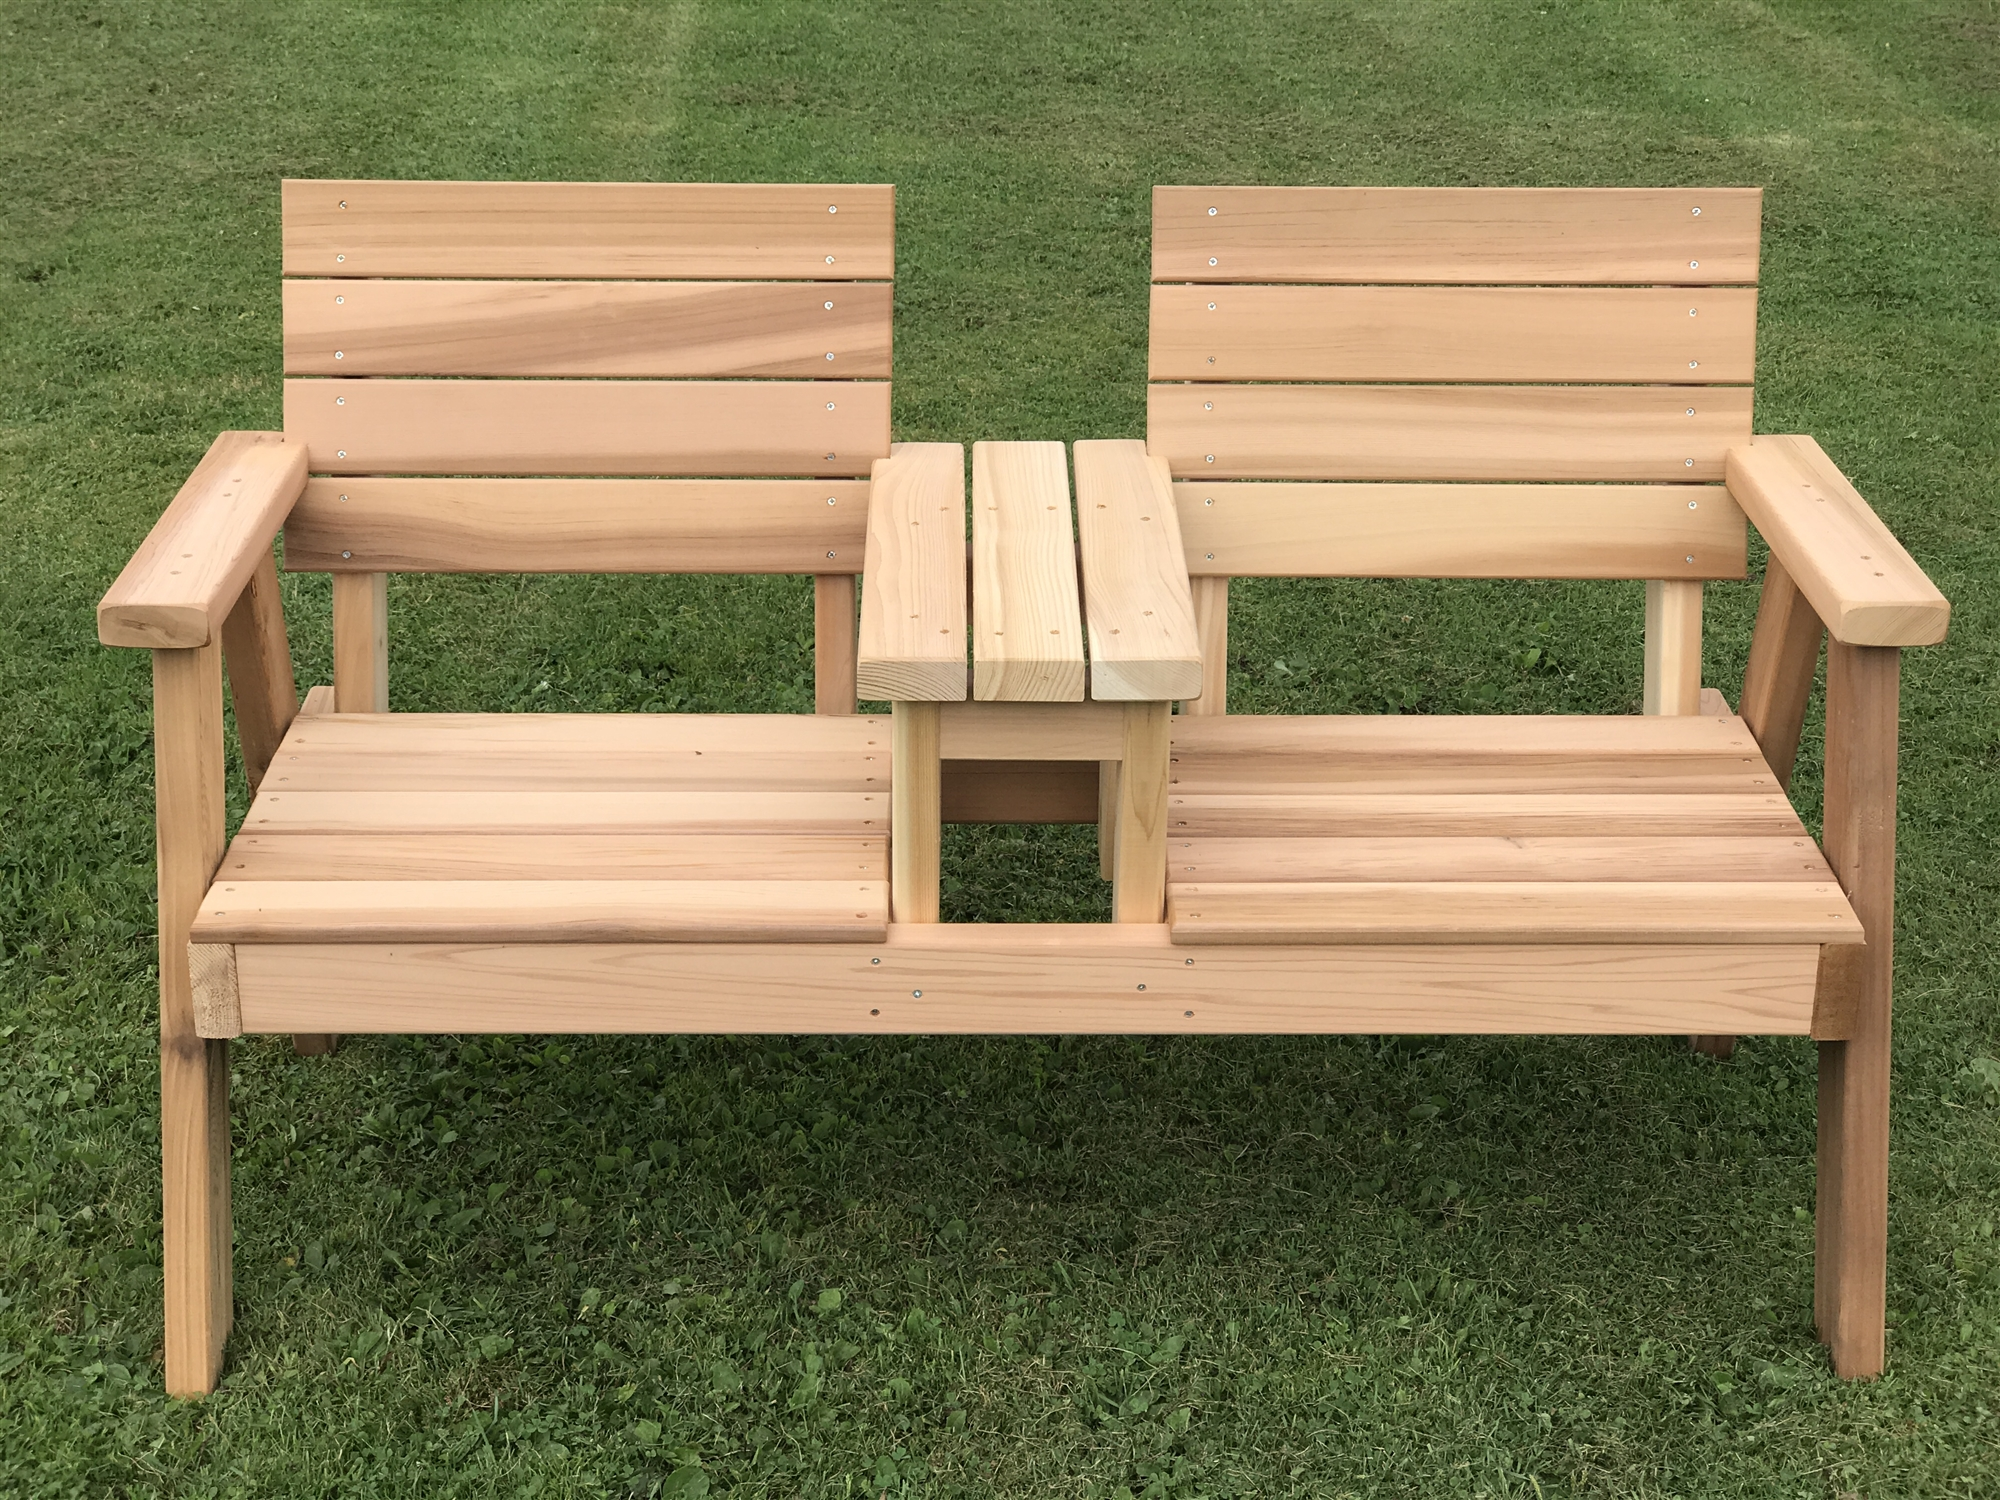 Joined Flat Seat Handcrafted Hillsfield Tete E Tete Bench